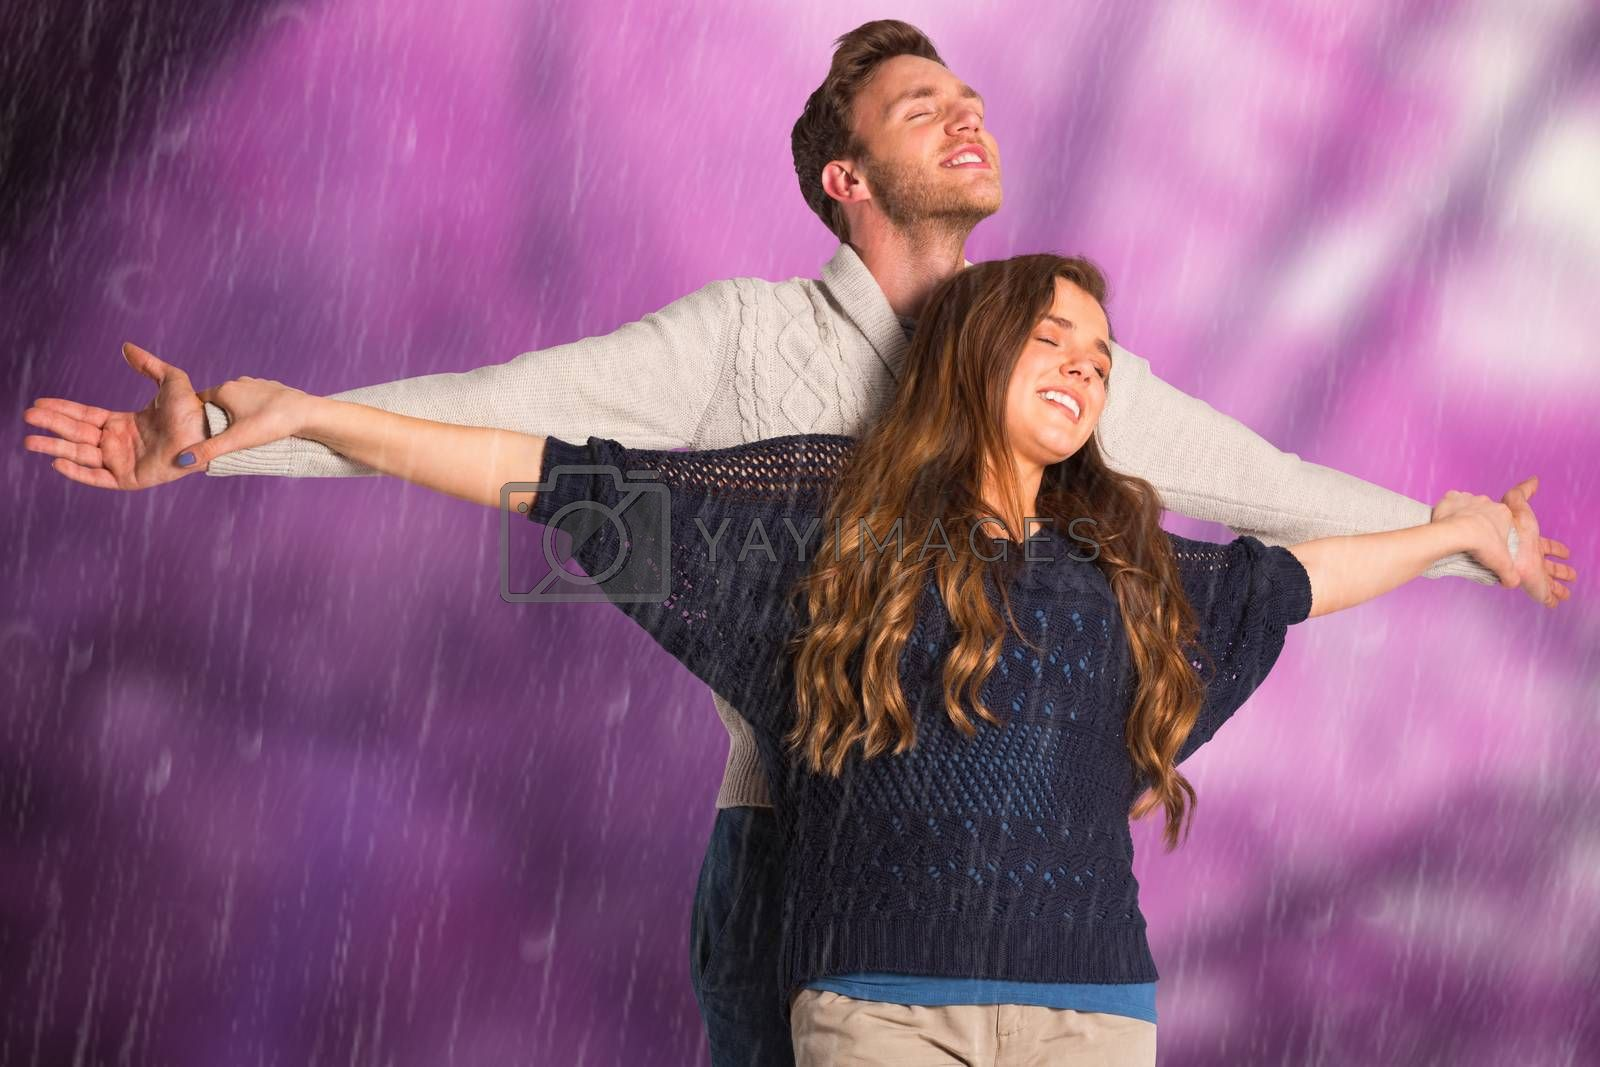 Romantic young couple with arms out against colourful forest